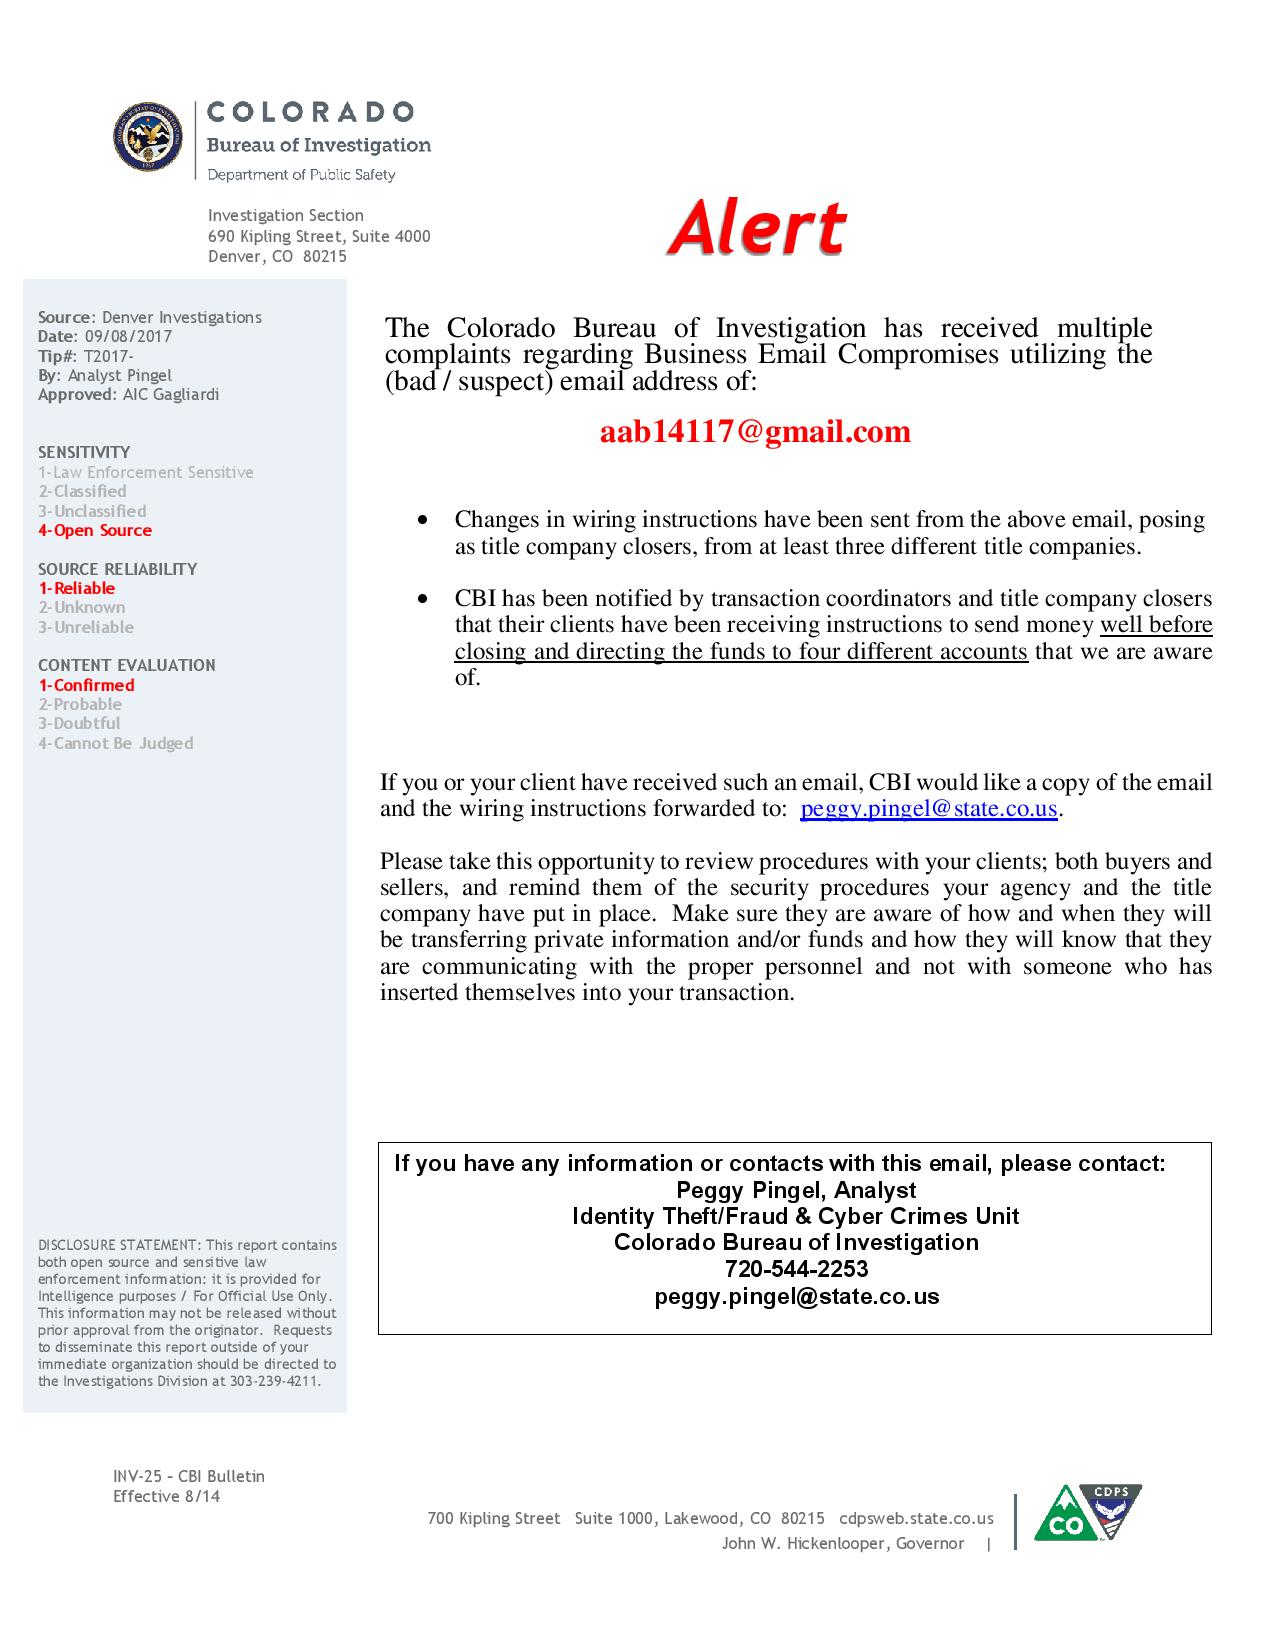 Active Properties Real Estate Email Internet Fraud Alert Colorado Wiring Money Safety Bureau Of Investigations